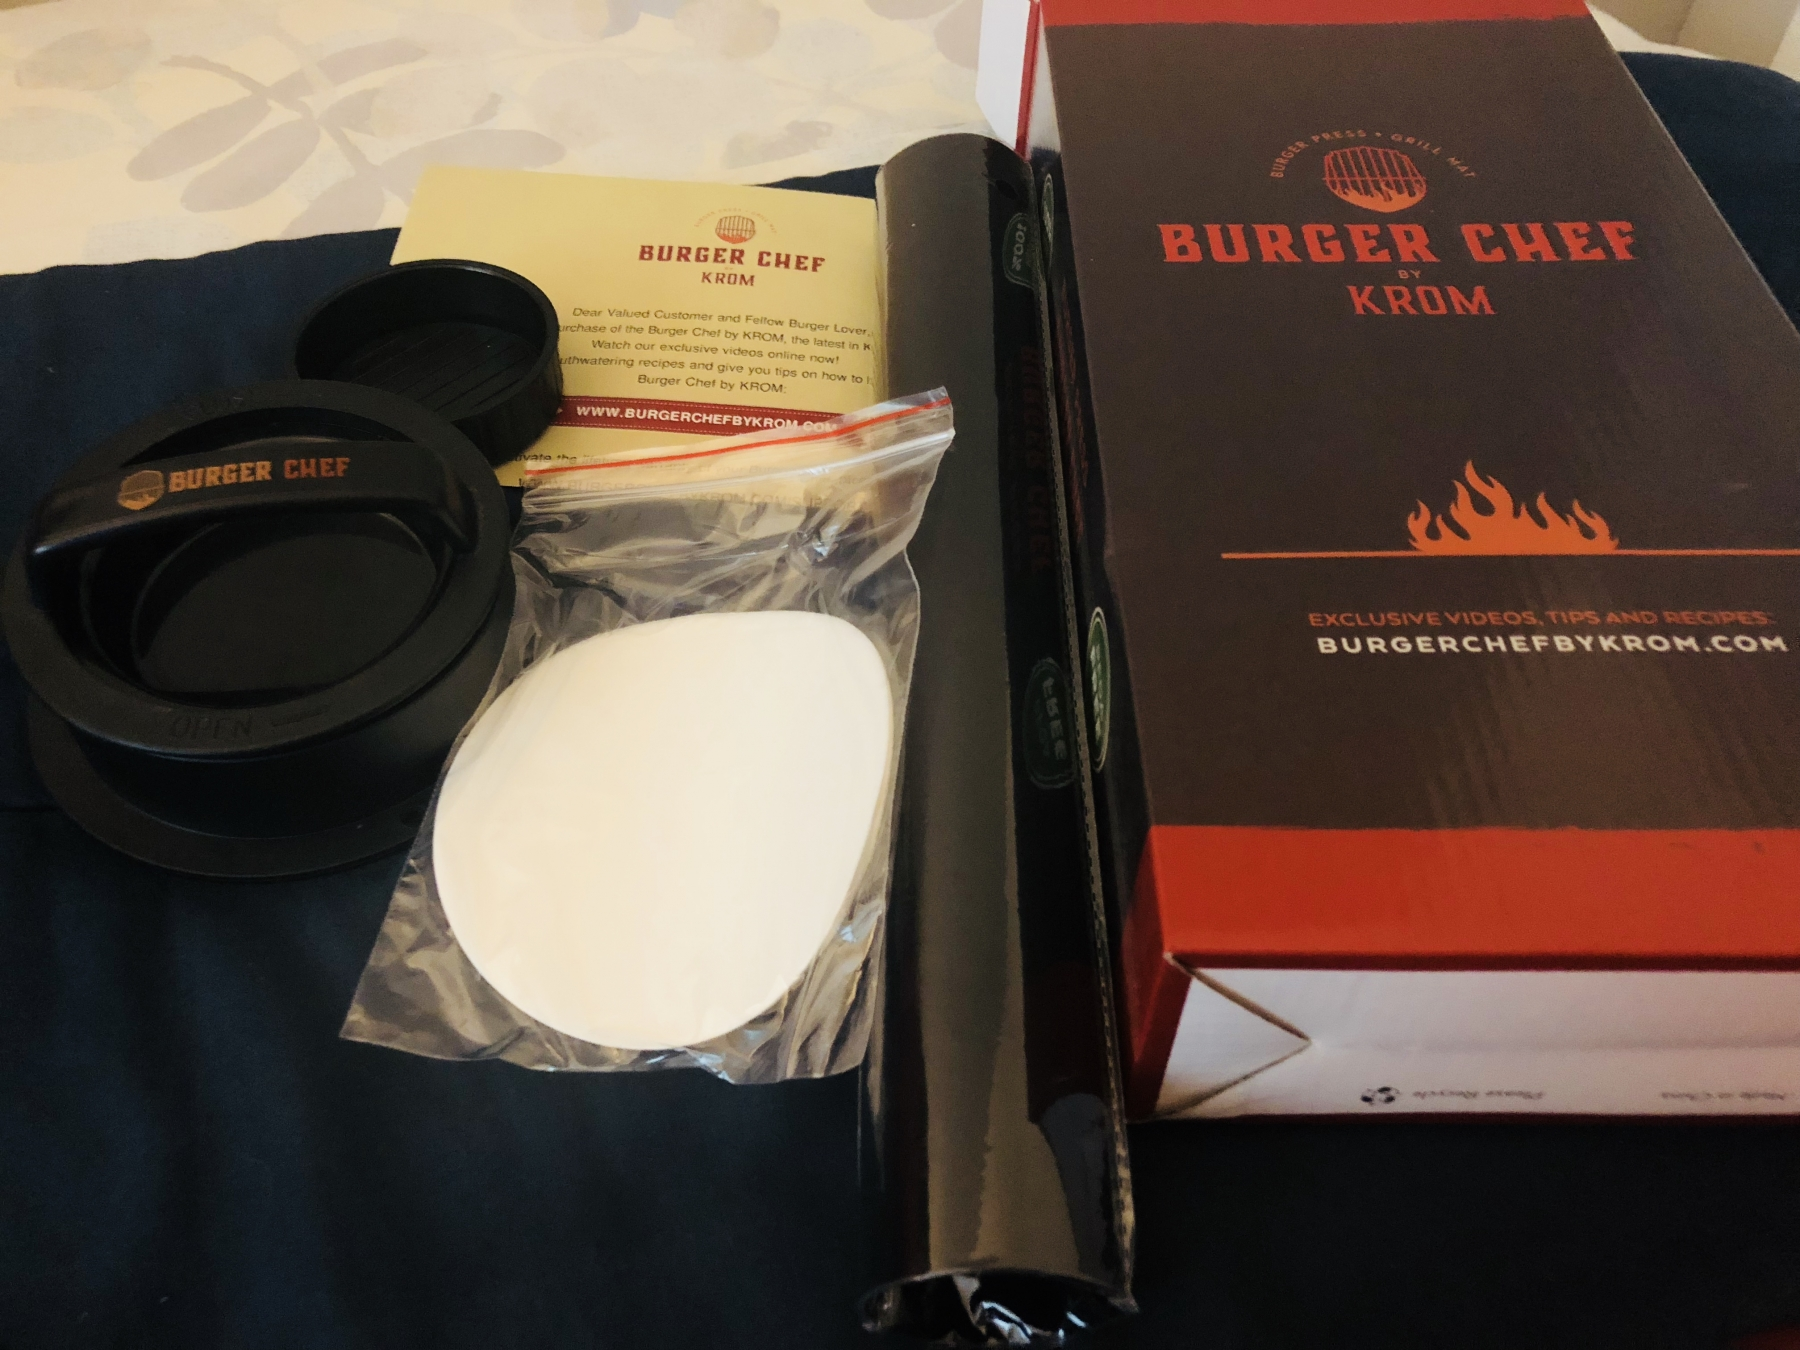 Burger press kit with Grill Mat Buger chef by Krom